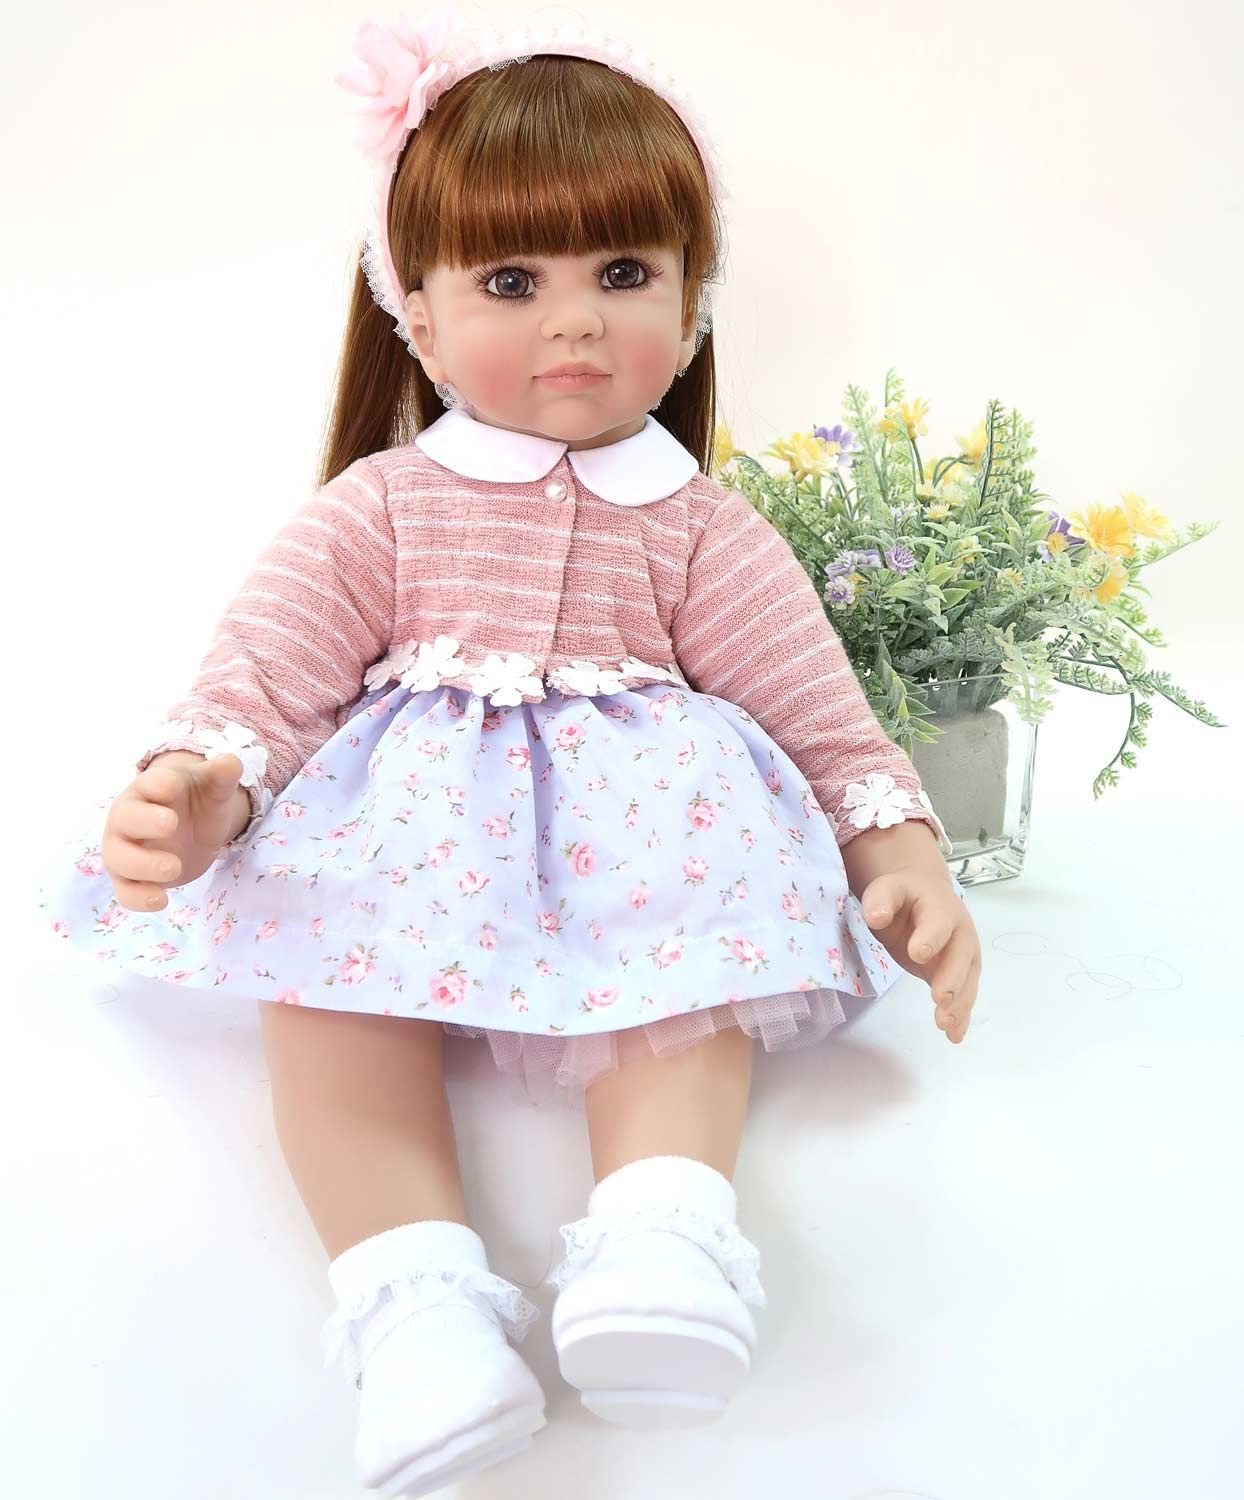 "Lifelike 24/"" Reborn Toddler Baby Princess Girl Vinyl Doll Toy Soft Fabric Body"